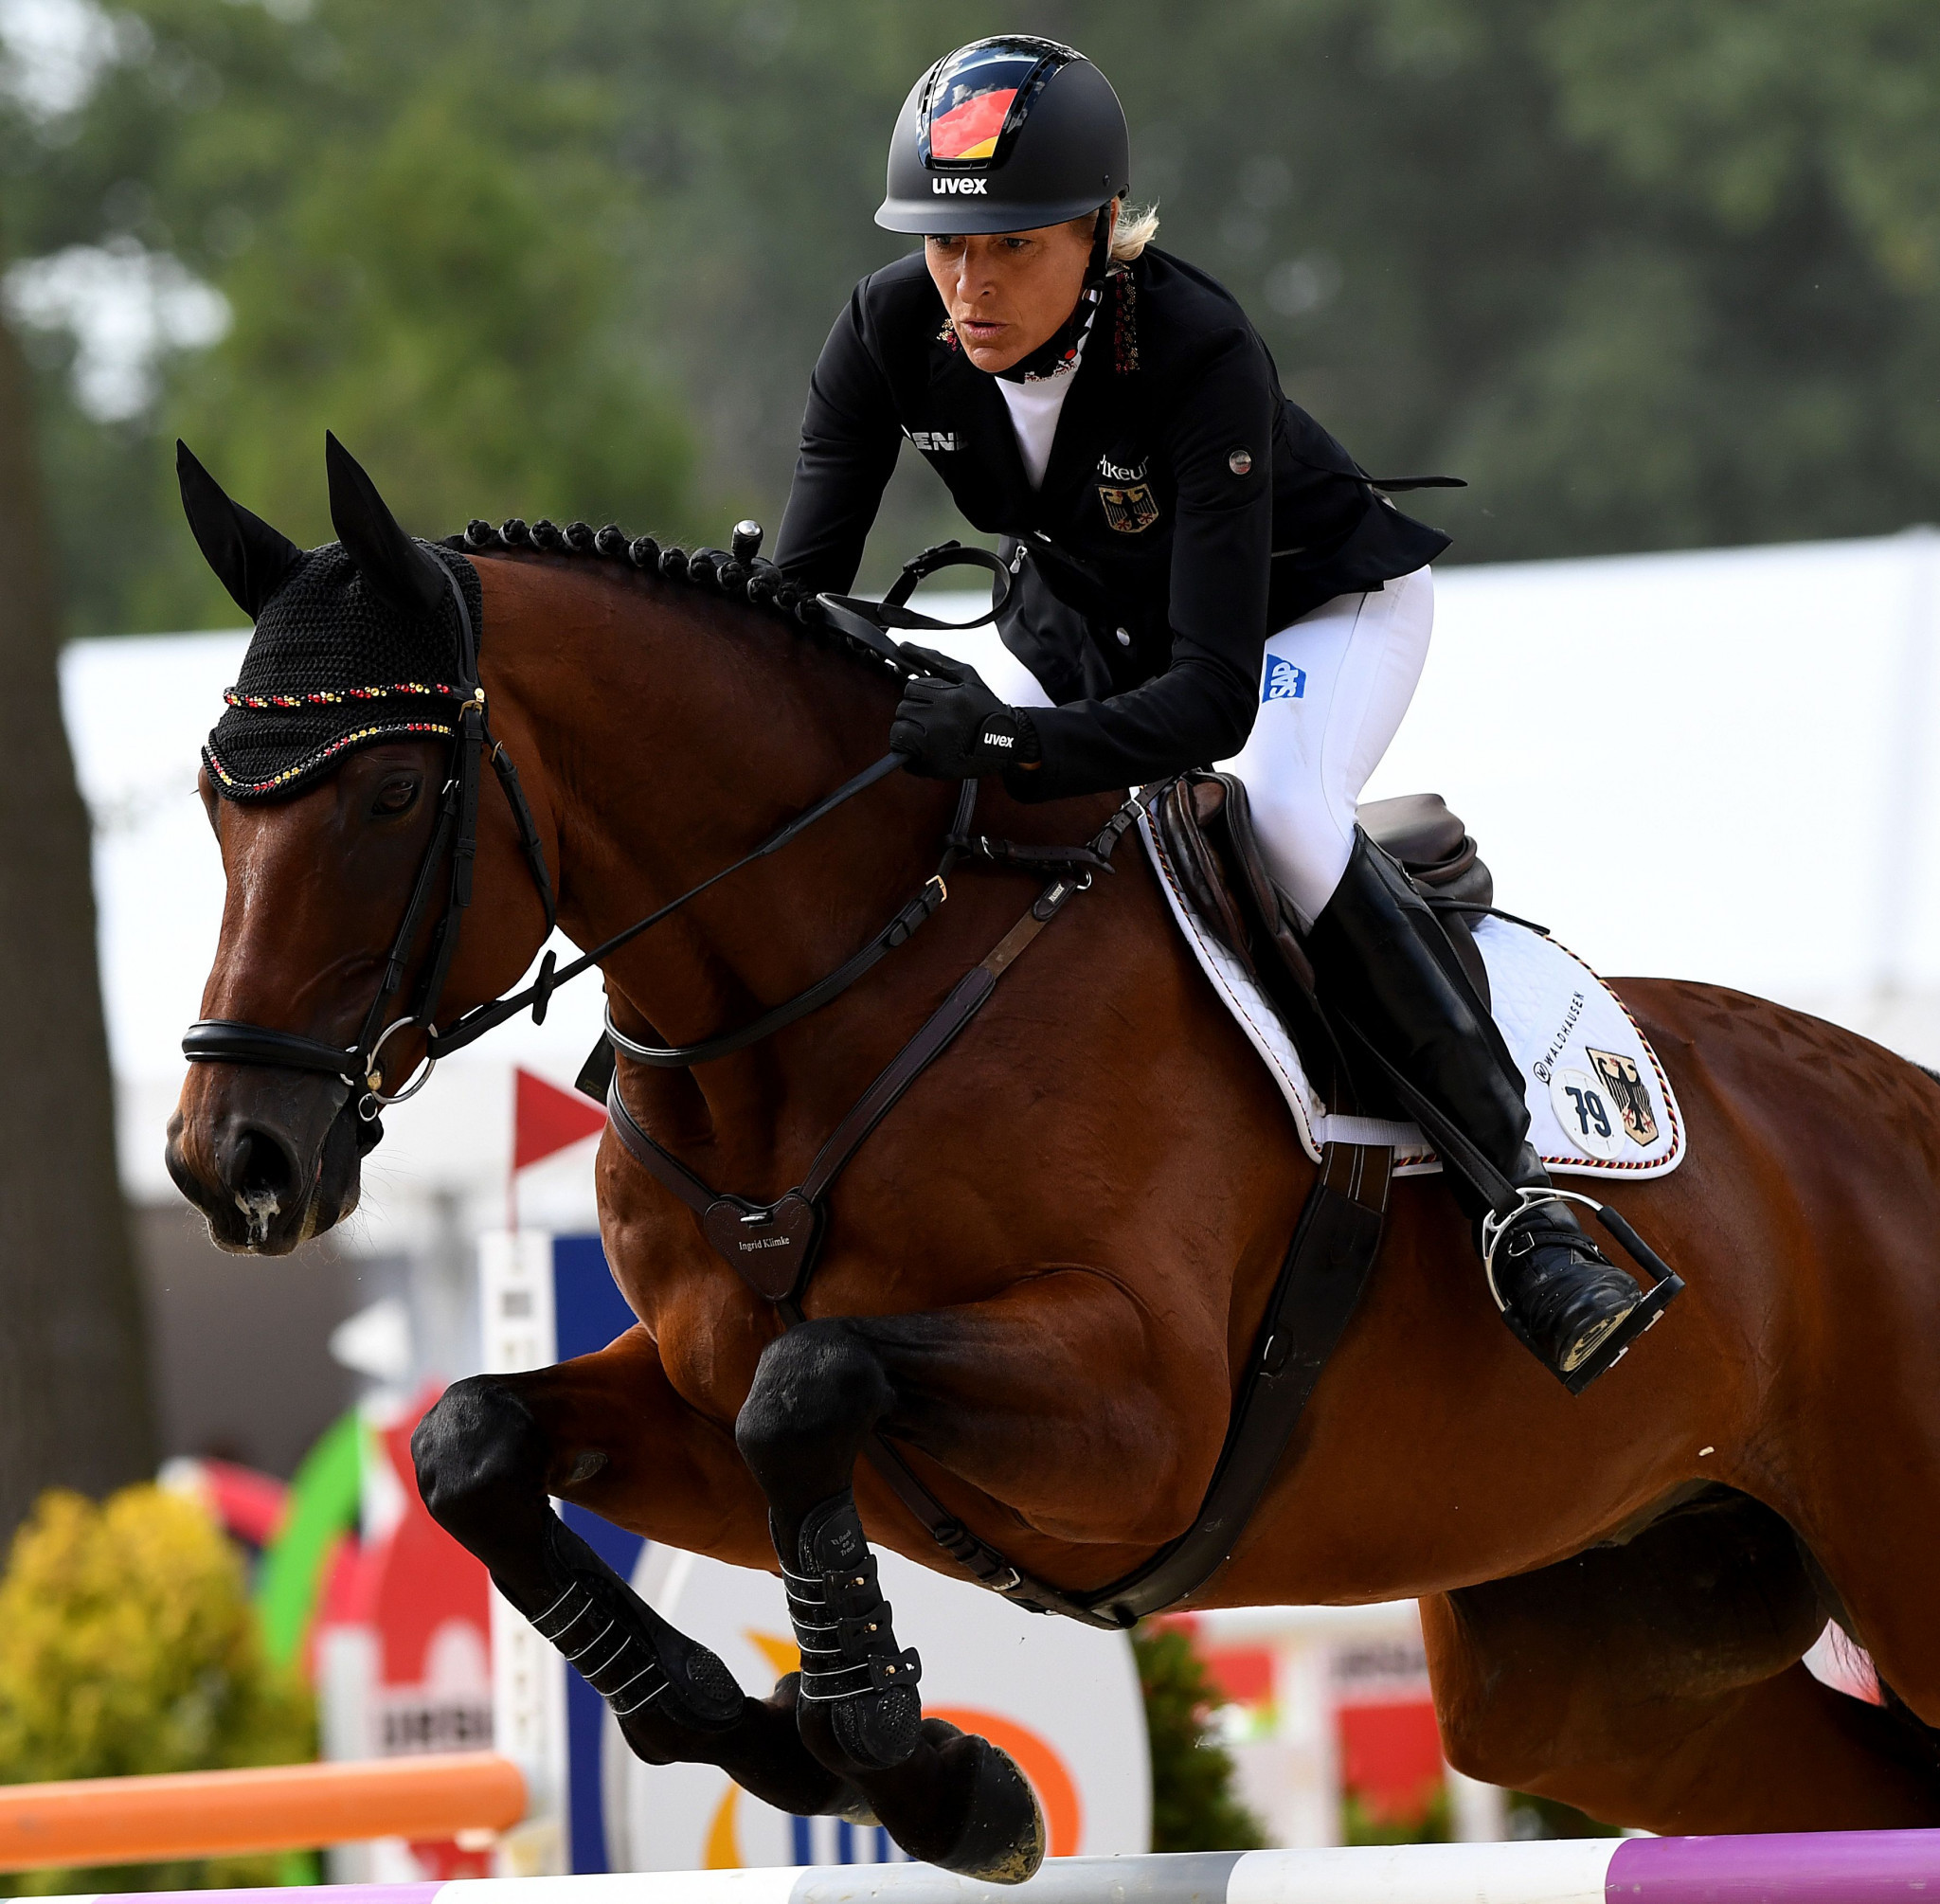 Klimke and Jung to lead charge for hosts Germany at European Eventing Championships